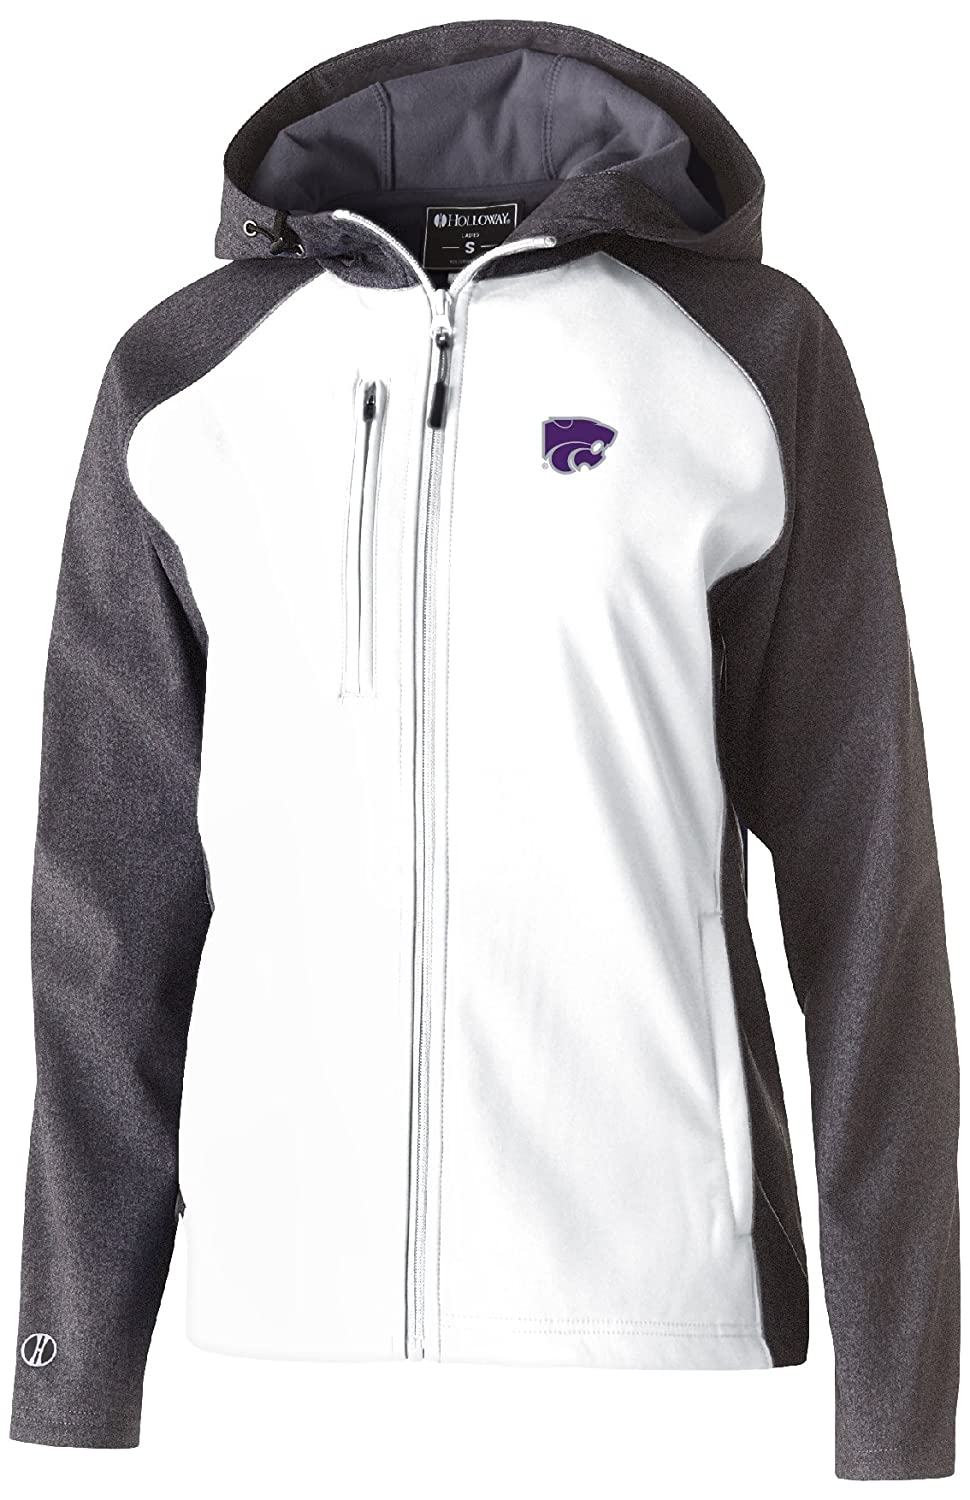 Carbon Print//White Large Ouray Sportswear NCAA Kansas State Wildcats Womens Raider Soft Shell Jacket